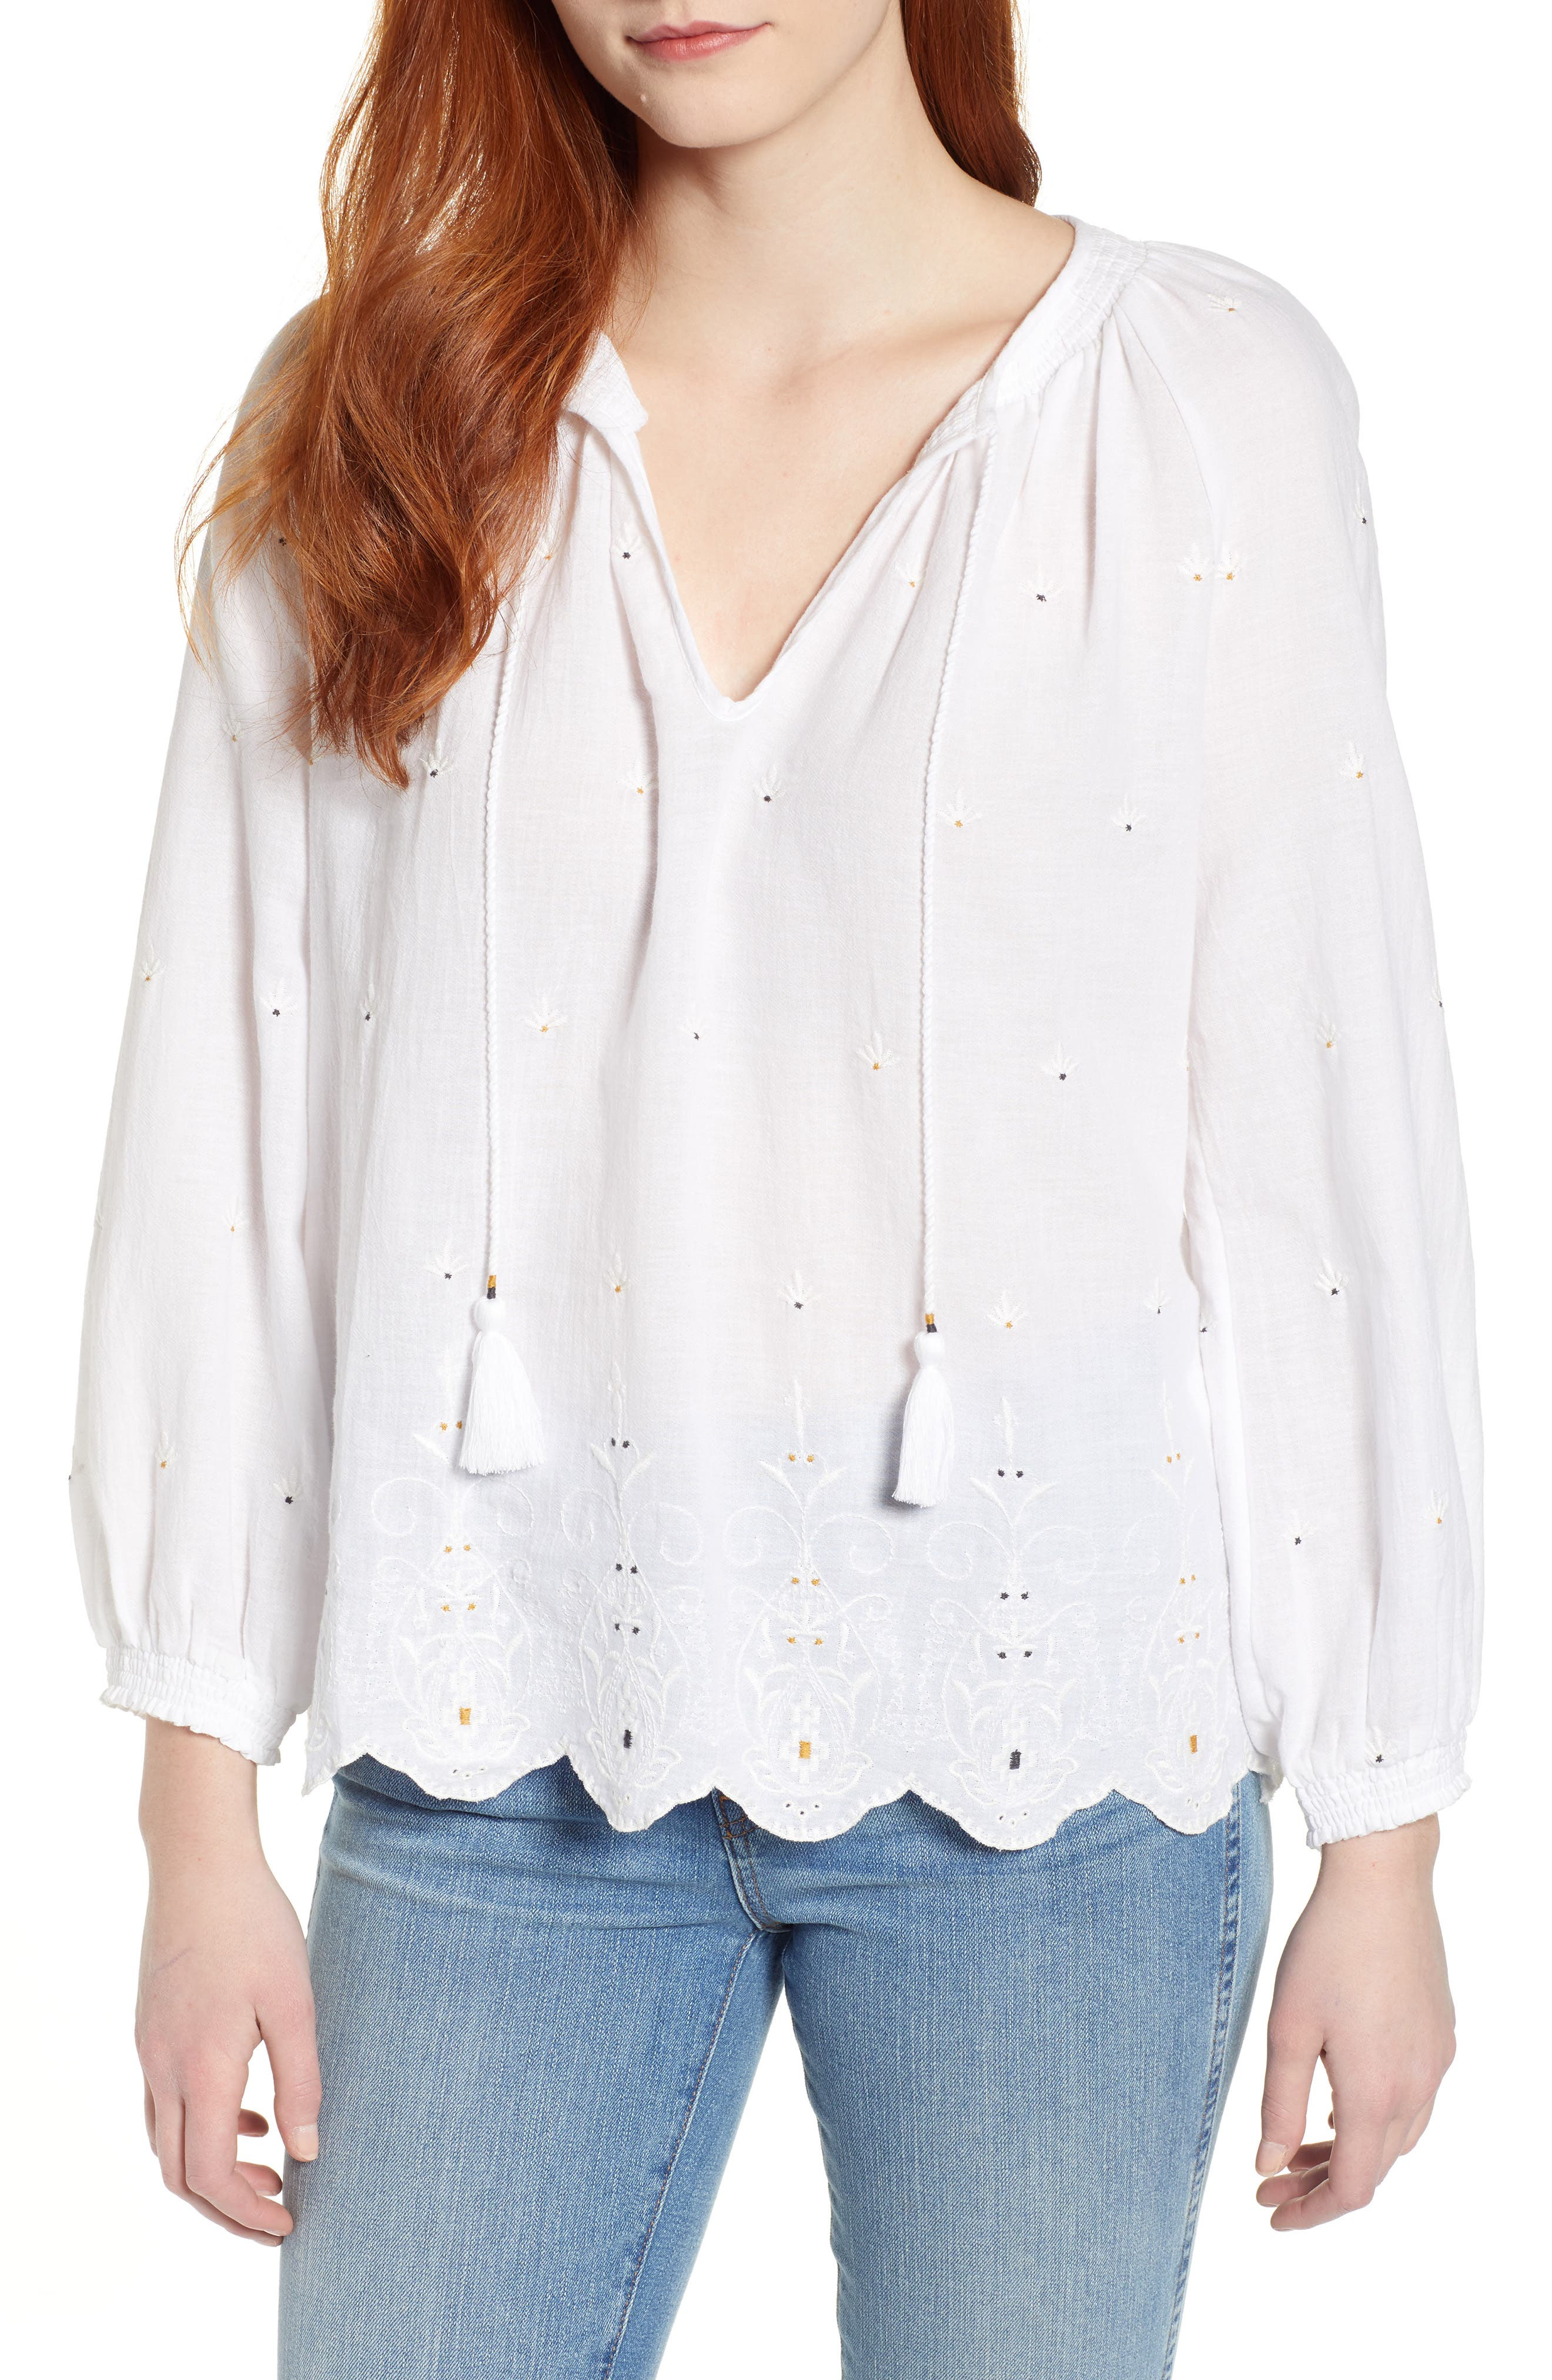 LUCKY BRAND, Eyelet Peasant Top, Main thumbnail 1, color, LUCKY WHITE